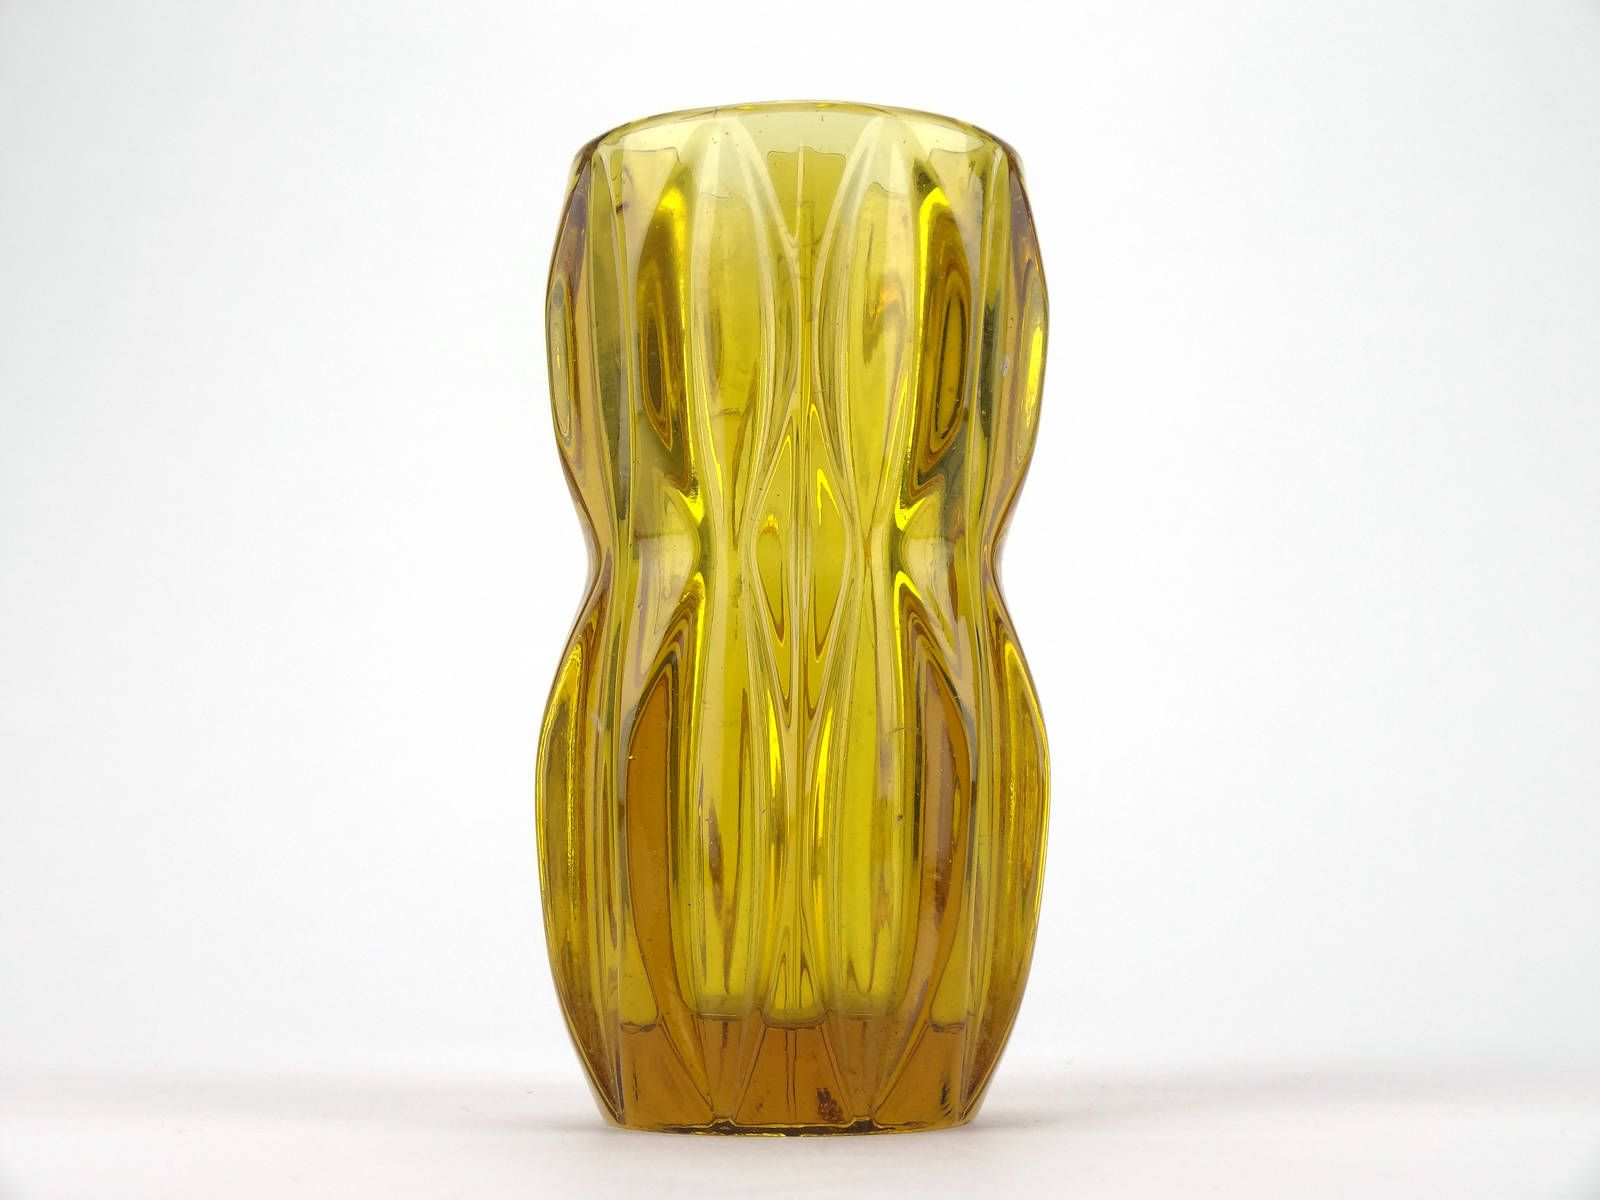 Vintage Czech Retro Yellow Amber Glass Vase By Jan Schmid For Glass Flower Vases Bohemia Glass Amber Glass